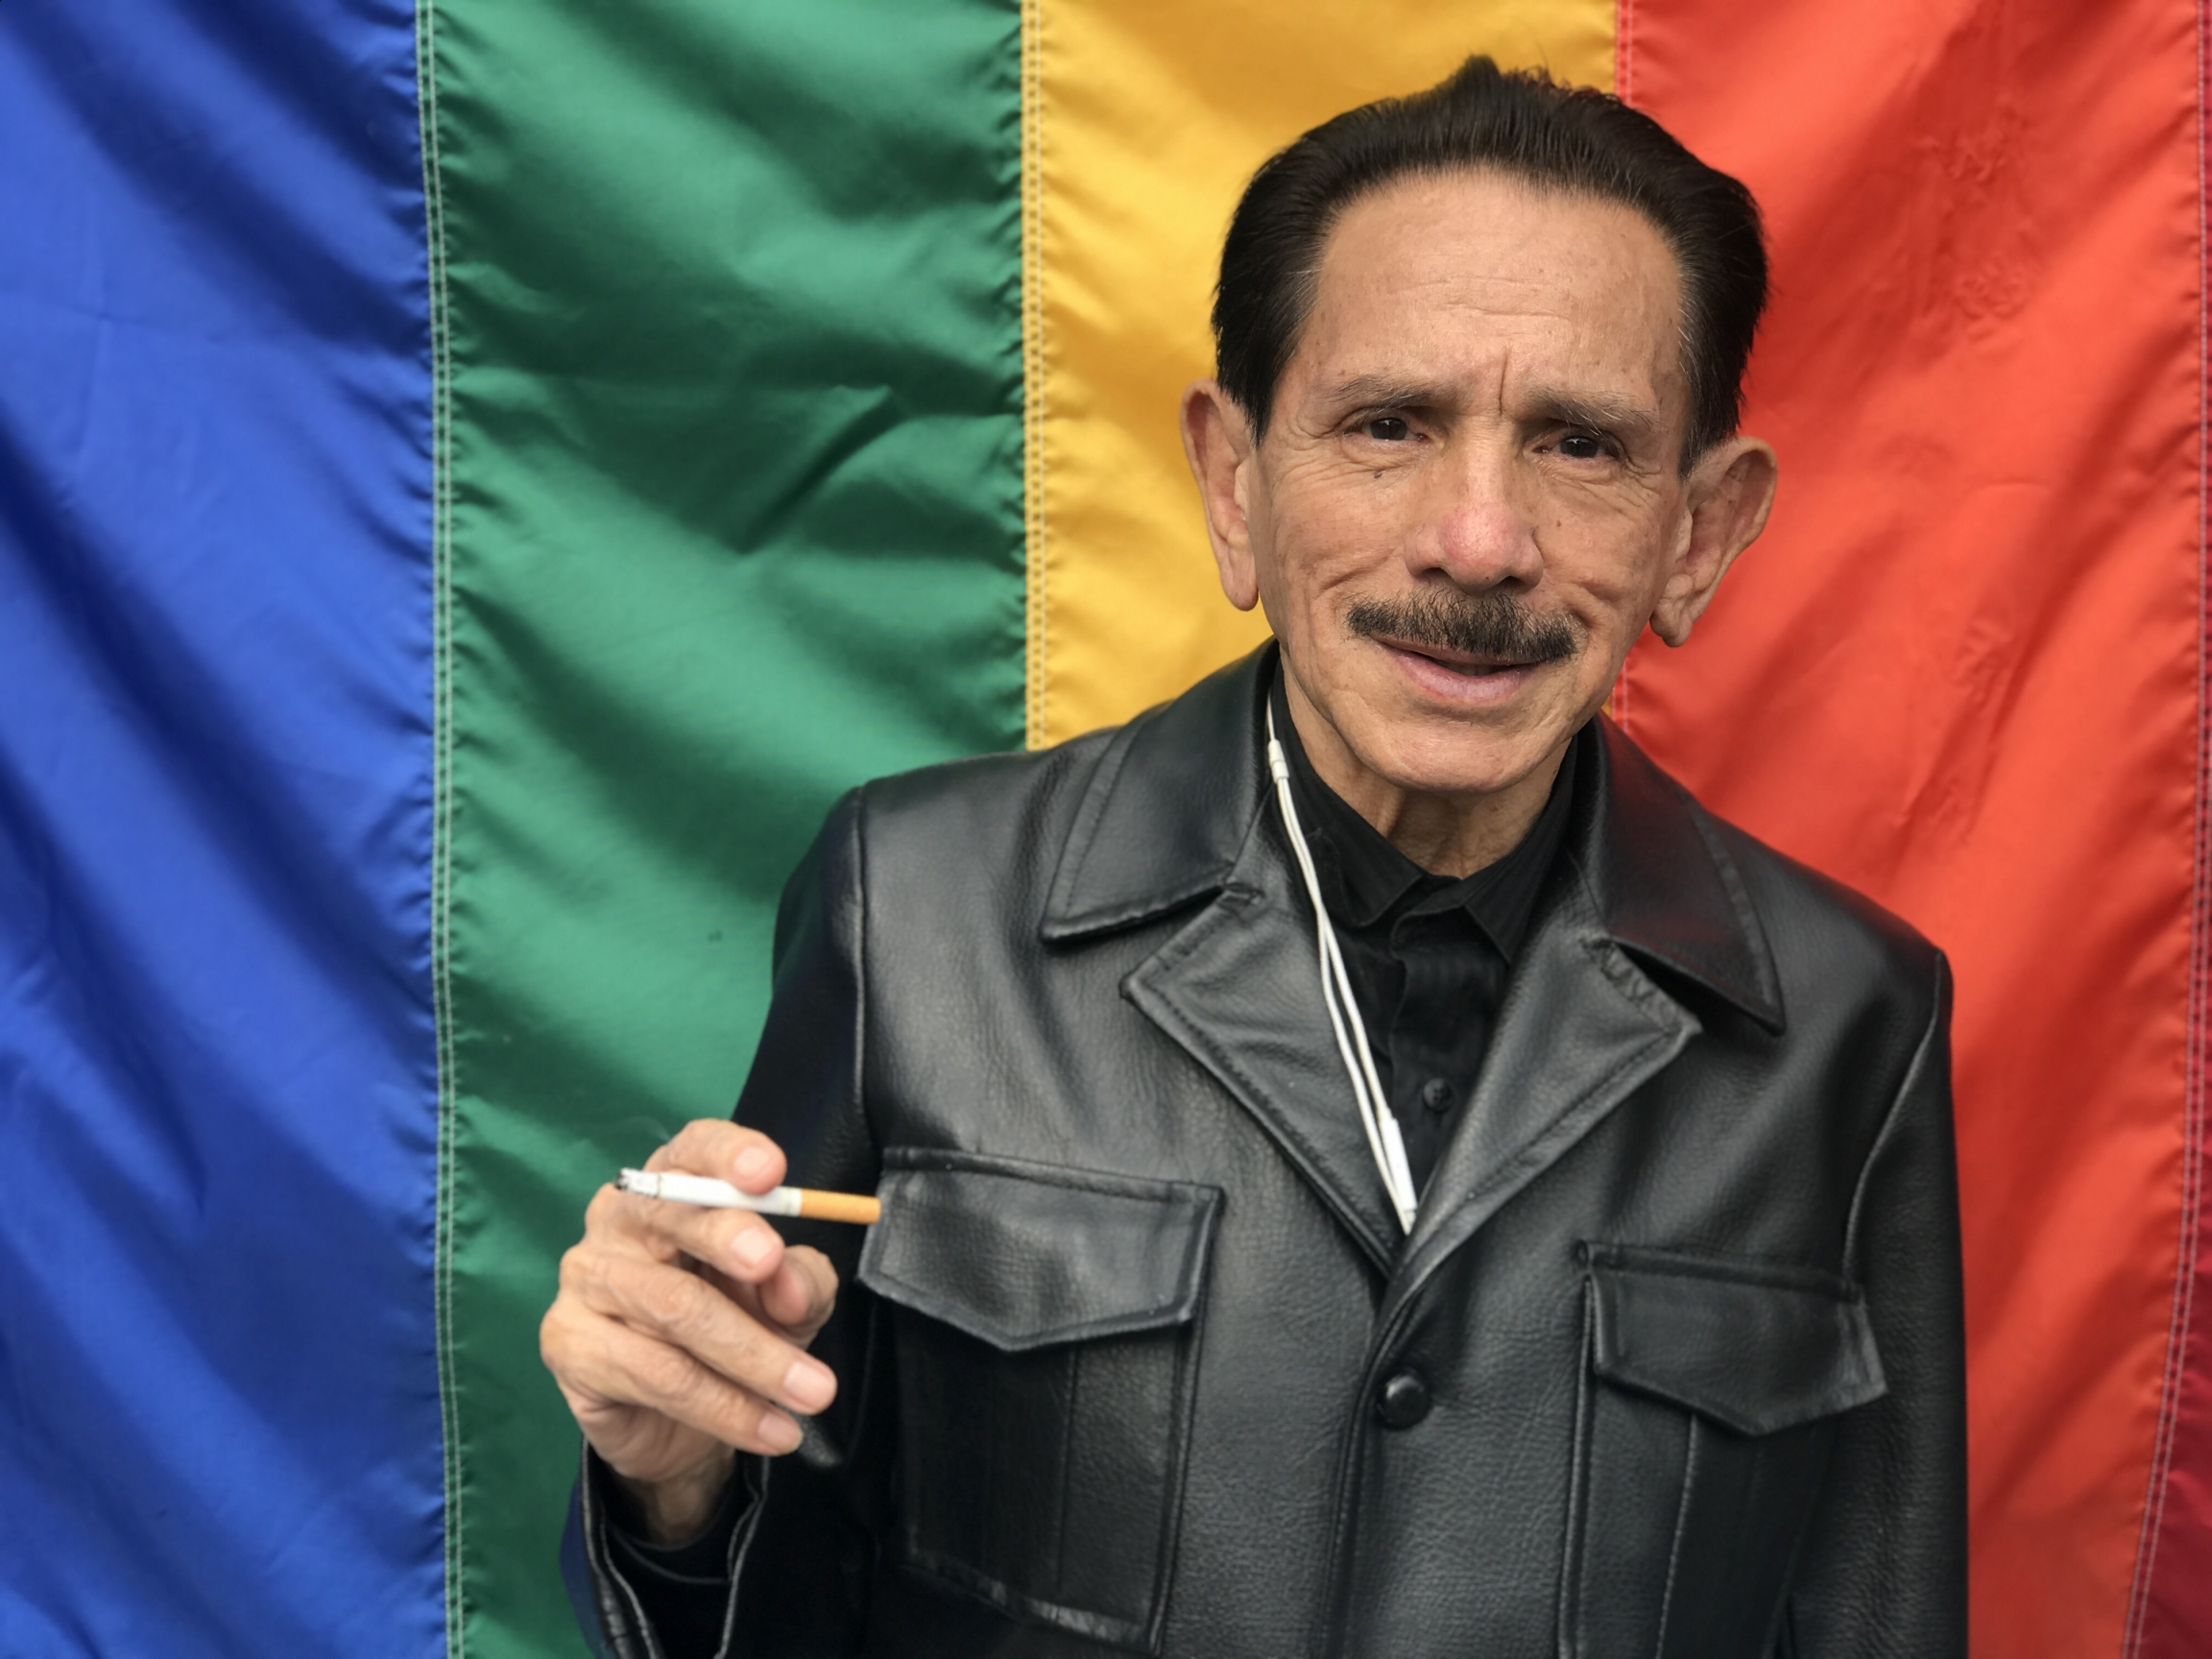 A man wearing a leather vest smokes in front of rainbow flag